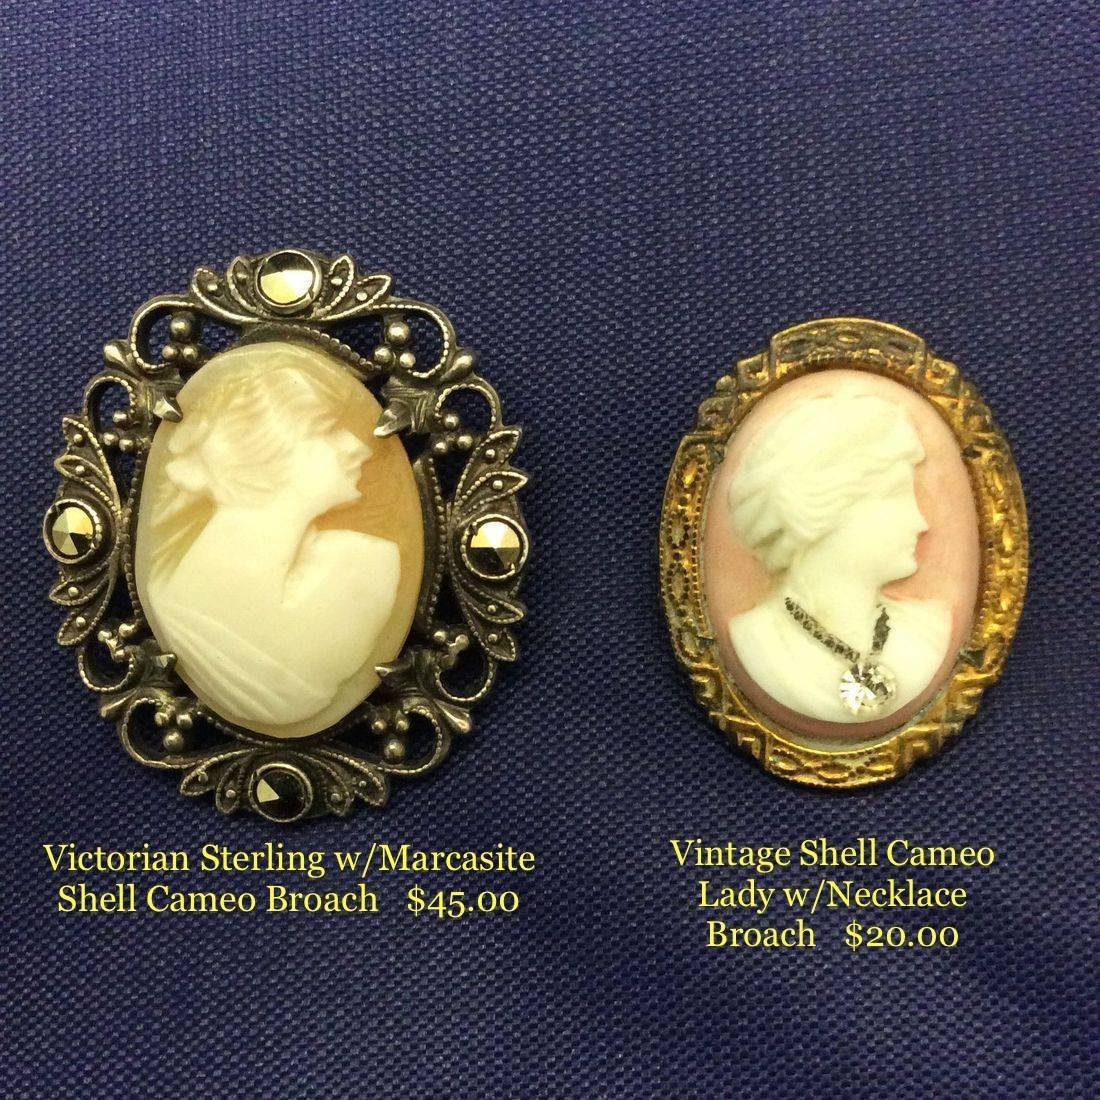 Vic. Sterling w/Marcasite, Shell Cameo, Broach  $45,  Vin. Cameo, Lady w/Necklace Pin  $20